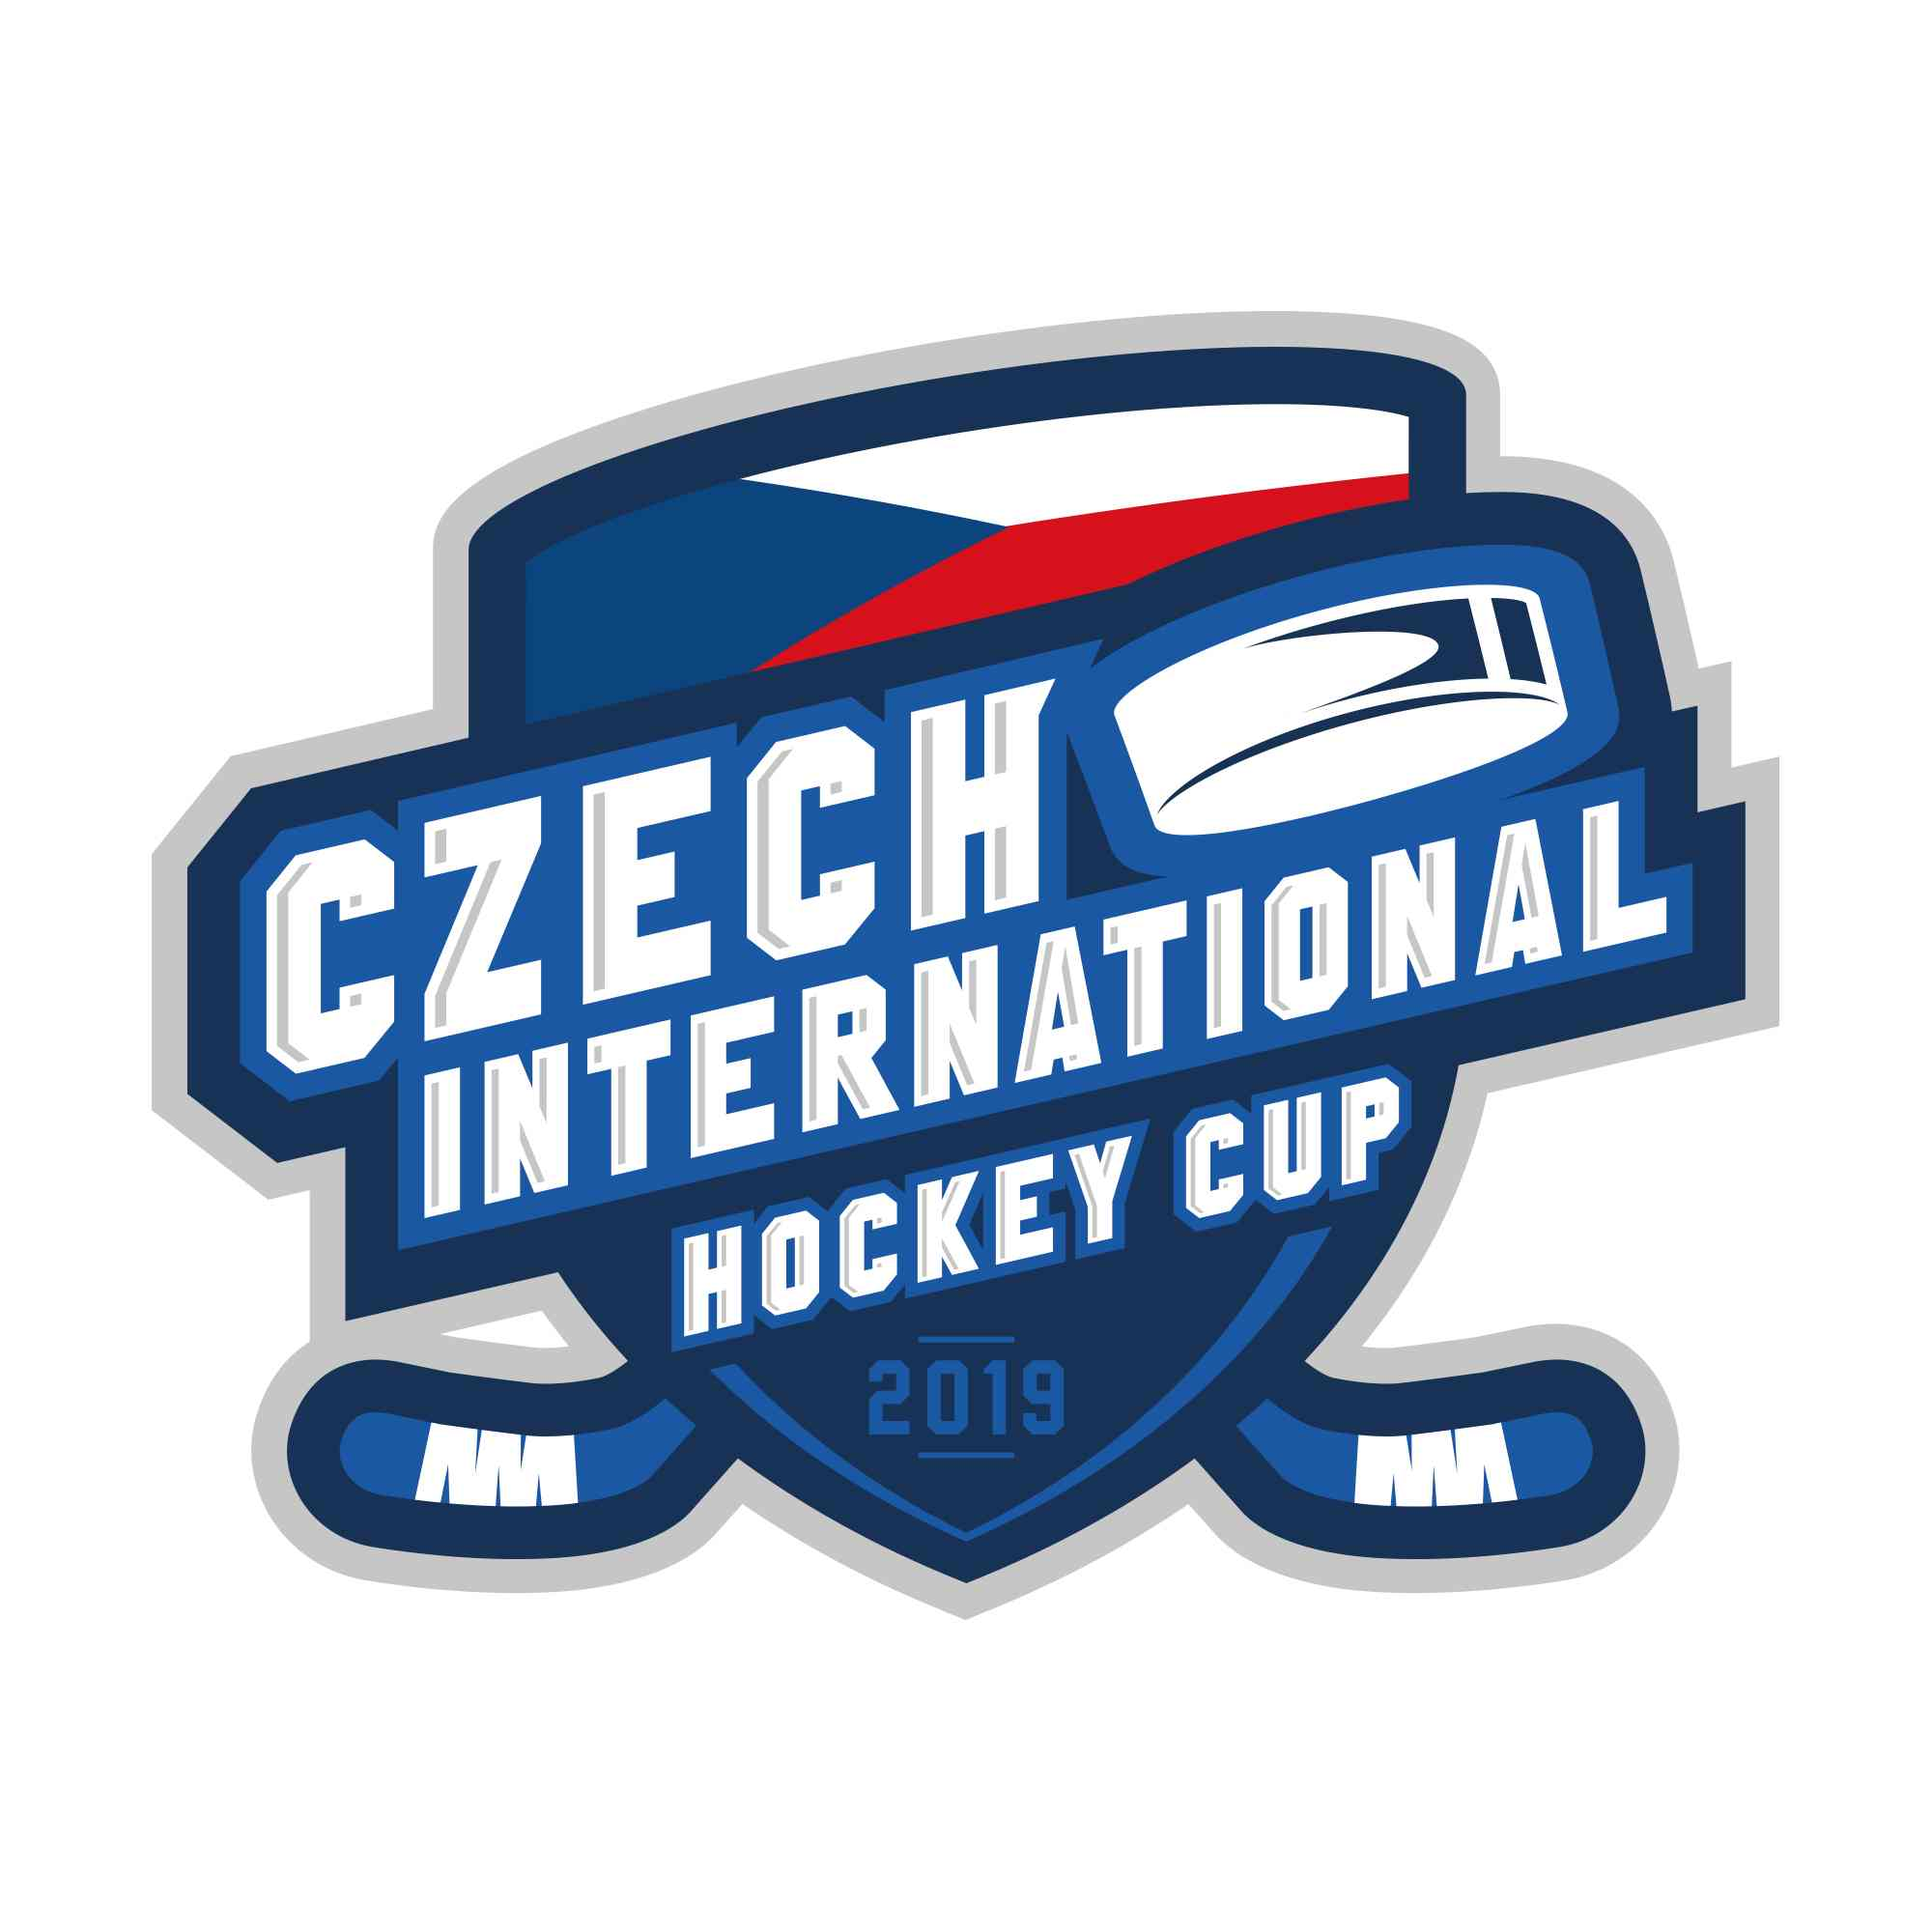 CZECH INTERNATIONAL HOCKEY CUP